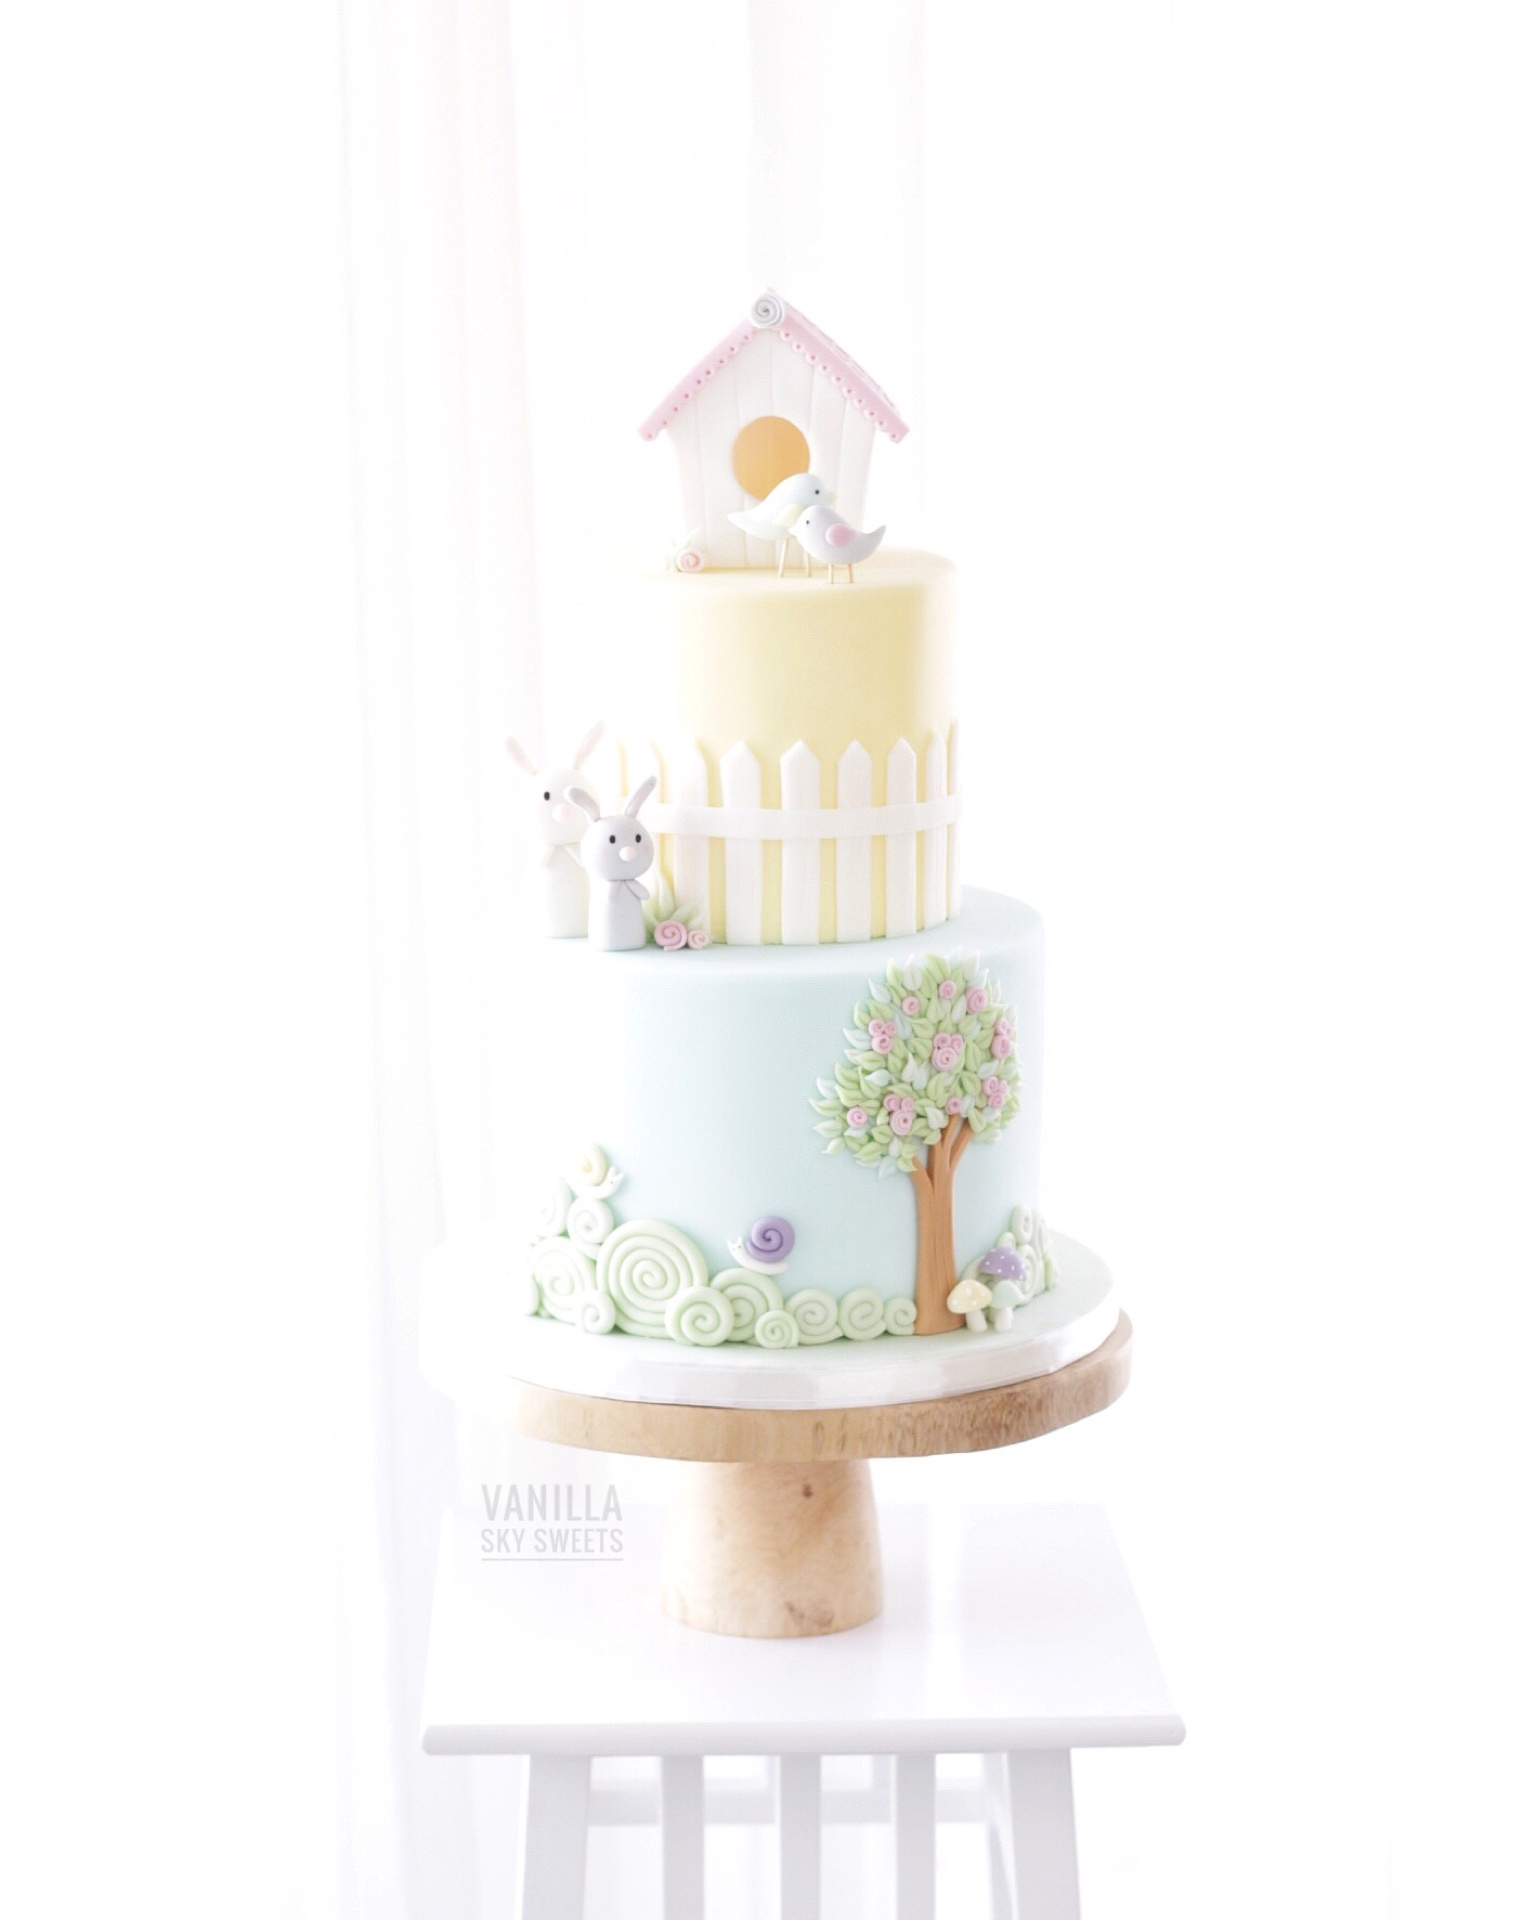 Birdhouse with bunny fondant cake